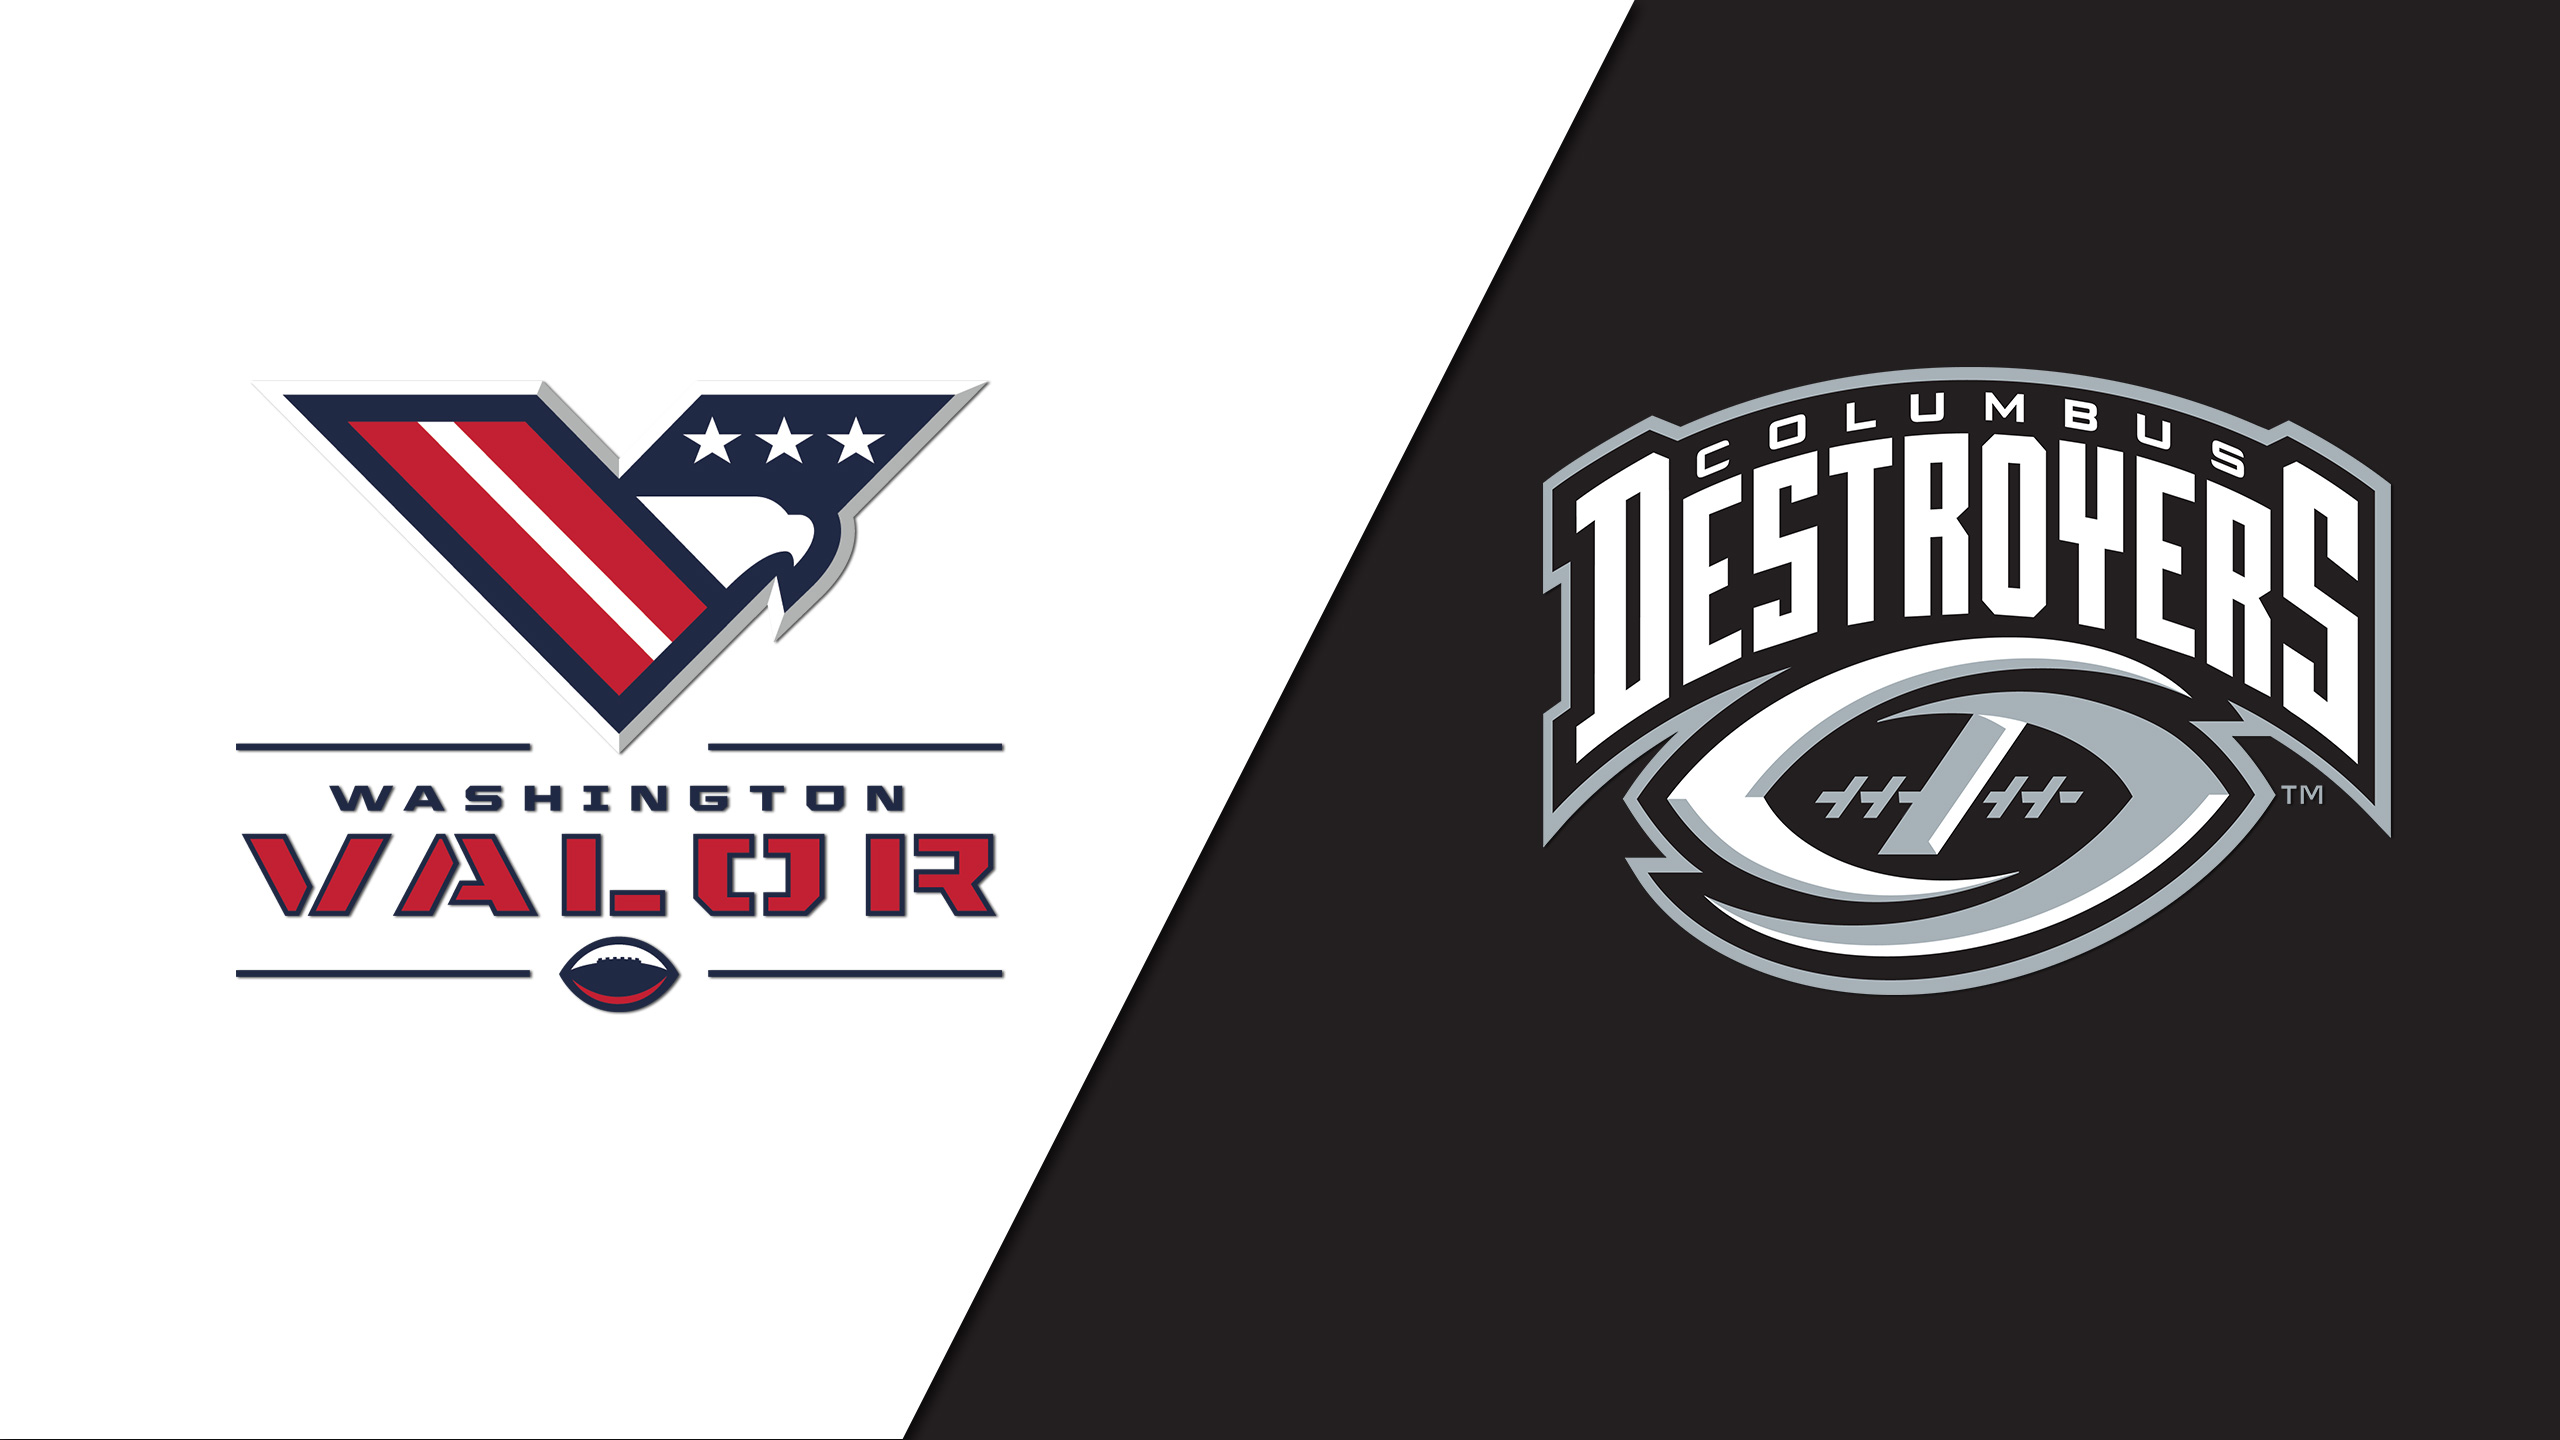 Washington Valor vs. Columbus Destroyers